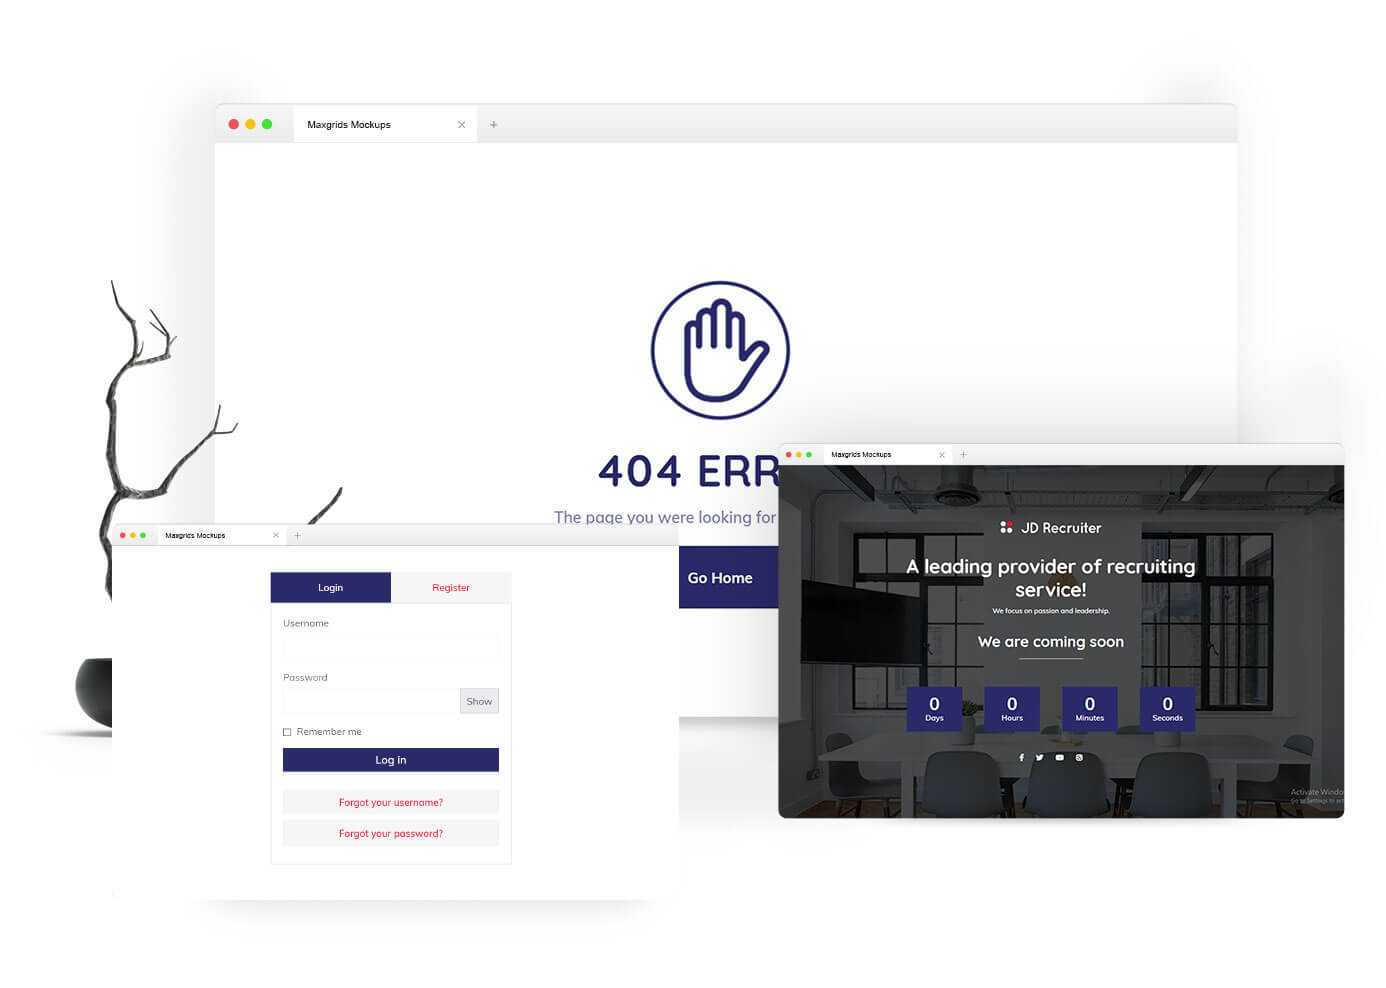 JD Recruiter - HR Consulting & Staffing Agency Joomla Template - 5